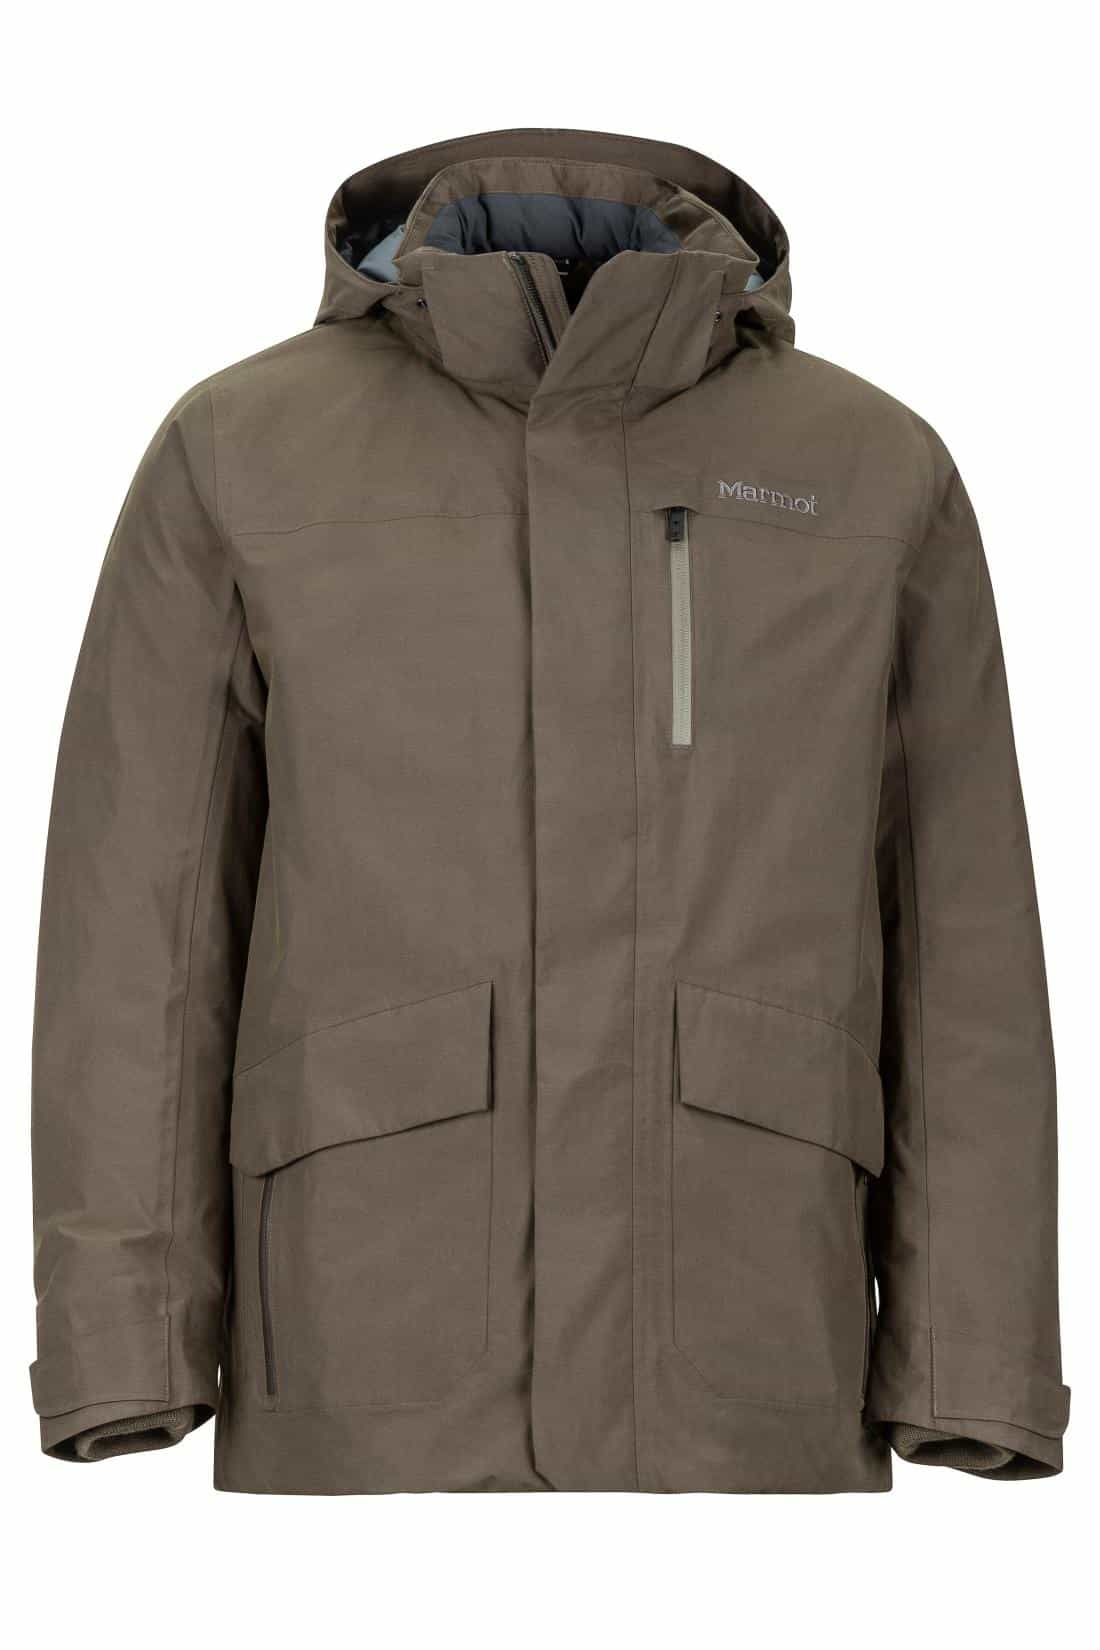 Marmot-Yorktown Featherless Jacket - Men's